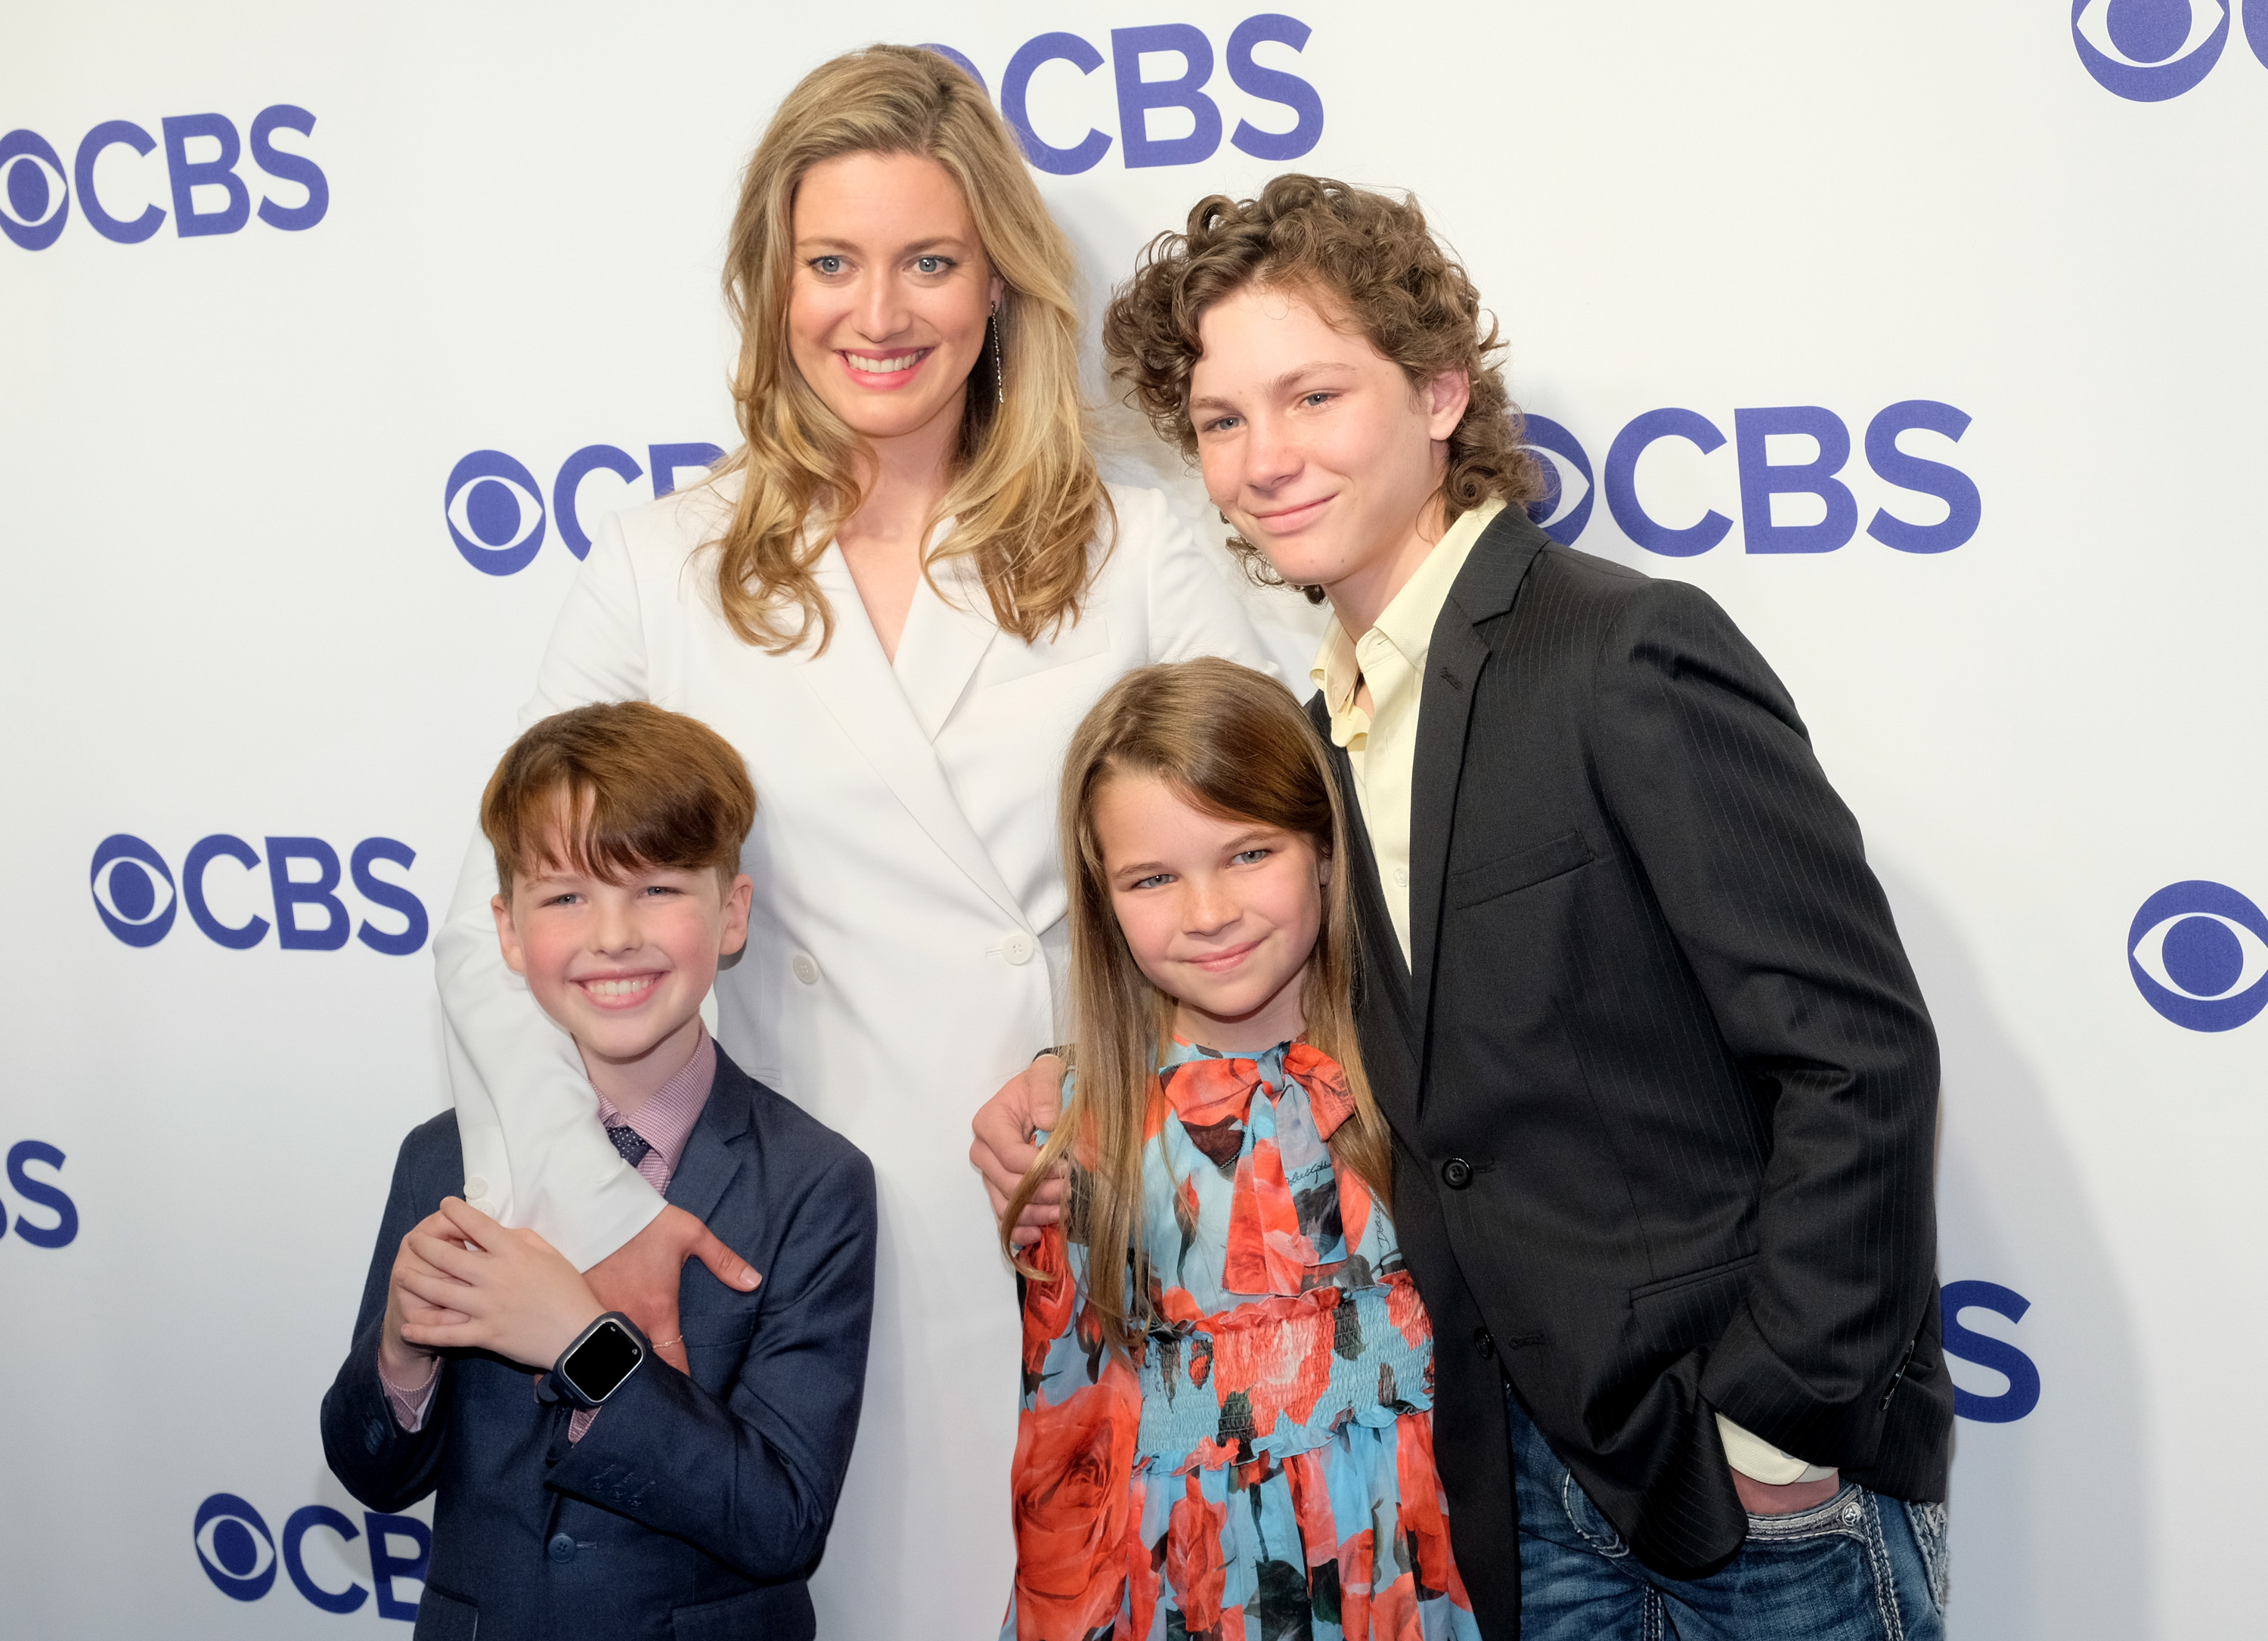 (L-R) Actors Iain Armitage, Zoe Perry, Raegan Revord and Montana Jordan attend the 2018 CBS Upfront at The Plaza Hotel on May 16, 2018 in New York City.